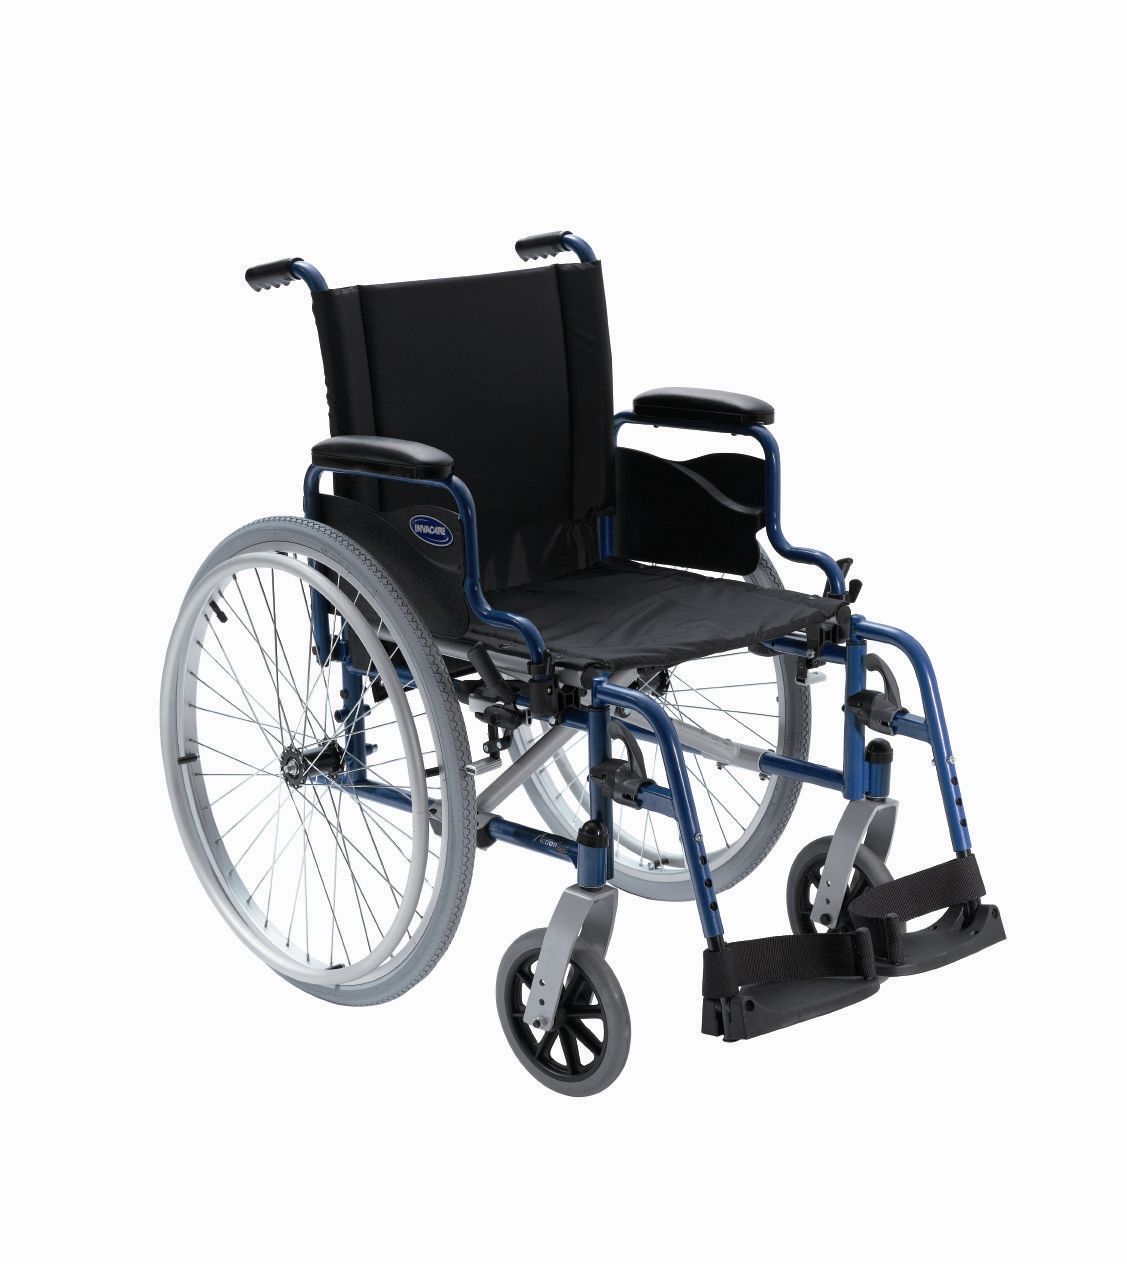 Location Dun Fauteuil Roulant MedicalIsle - Location fauteuil roulant